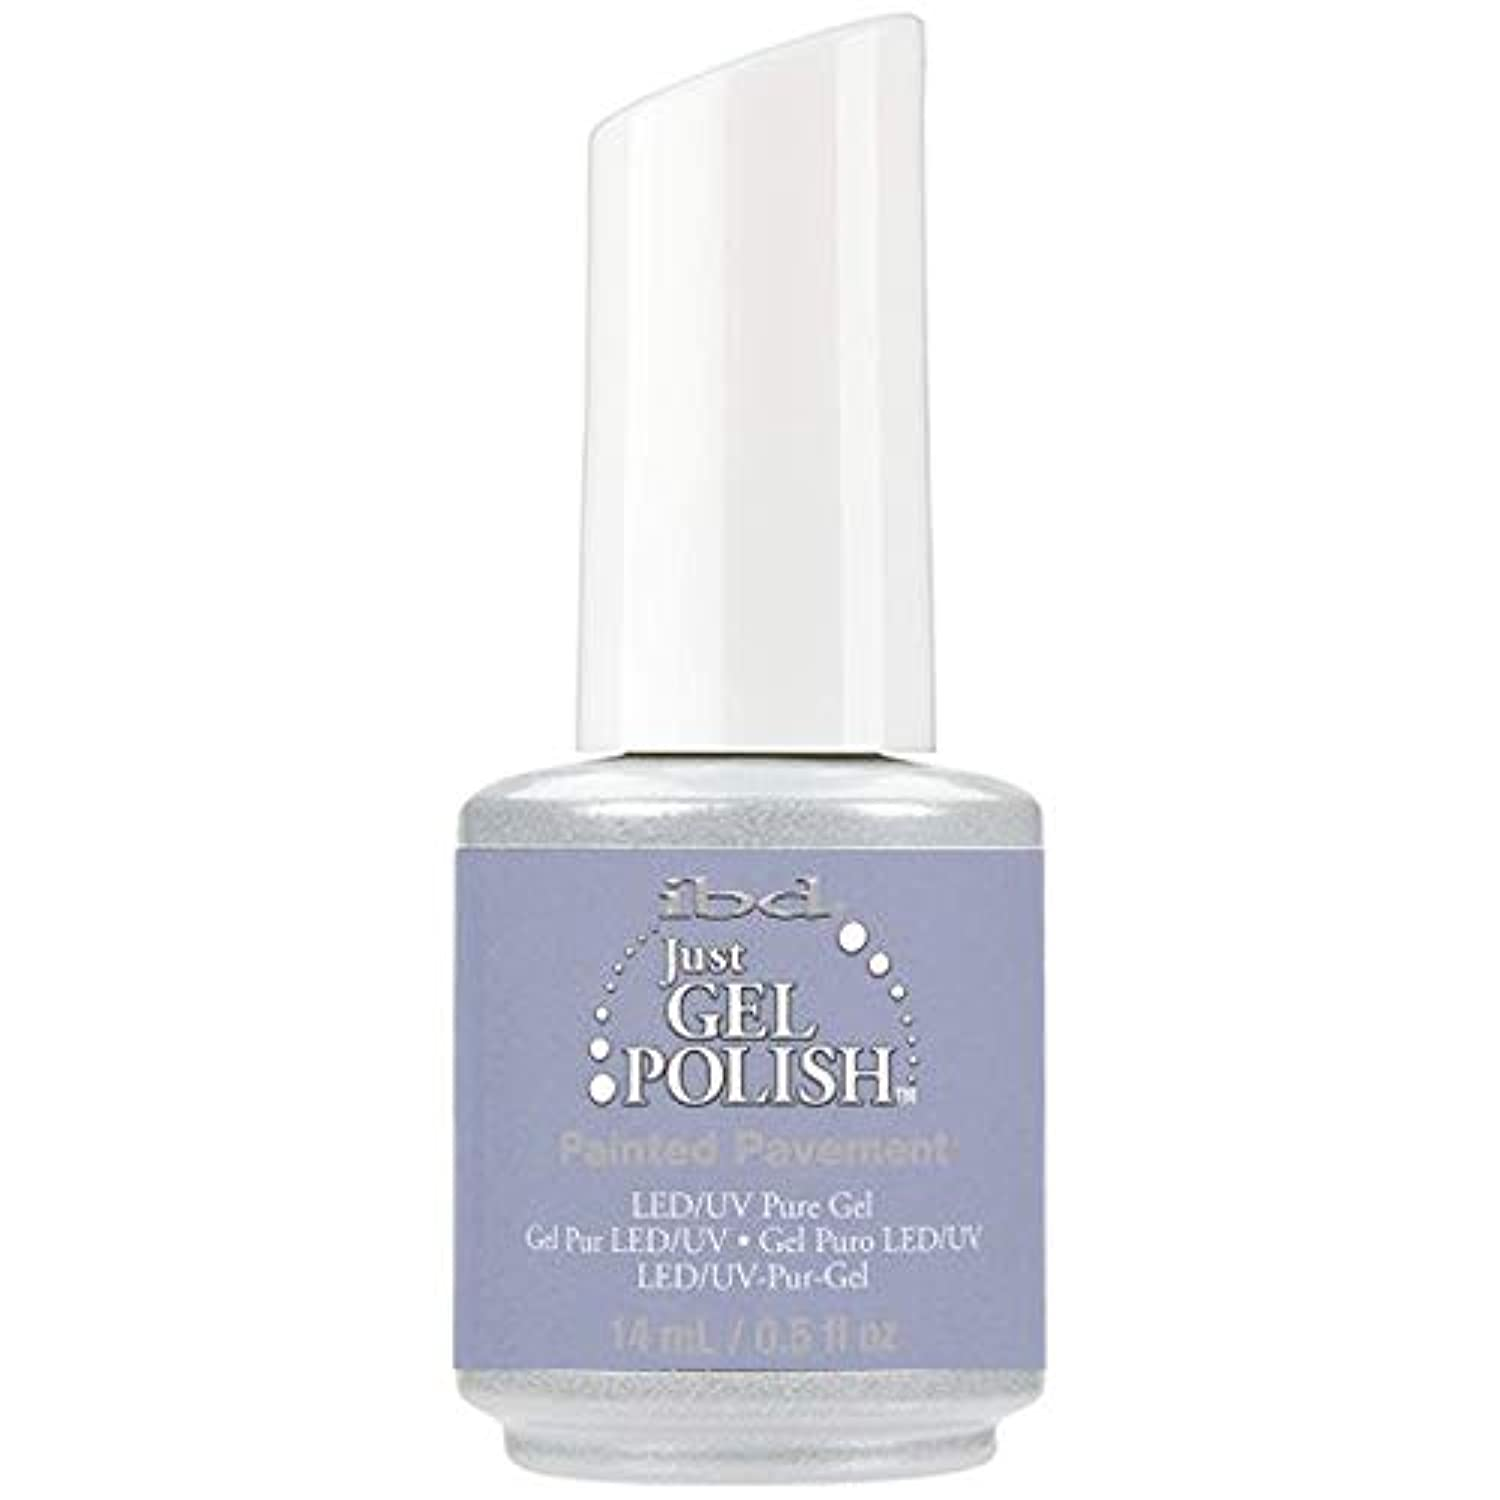 姿勢舗装するコーチibd Just Gel Nail Polish - Painted Pavement - 14ml / 0.5oz